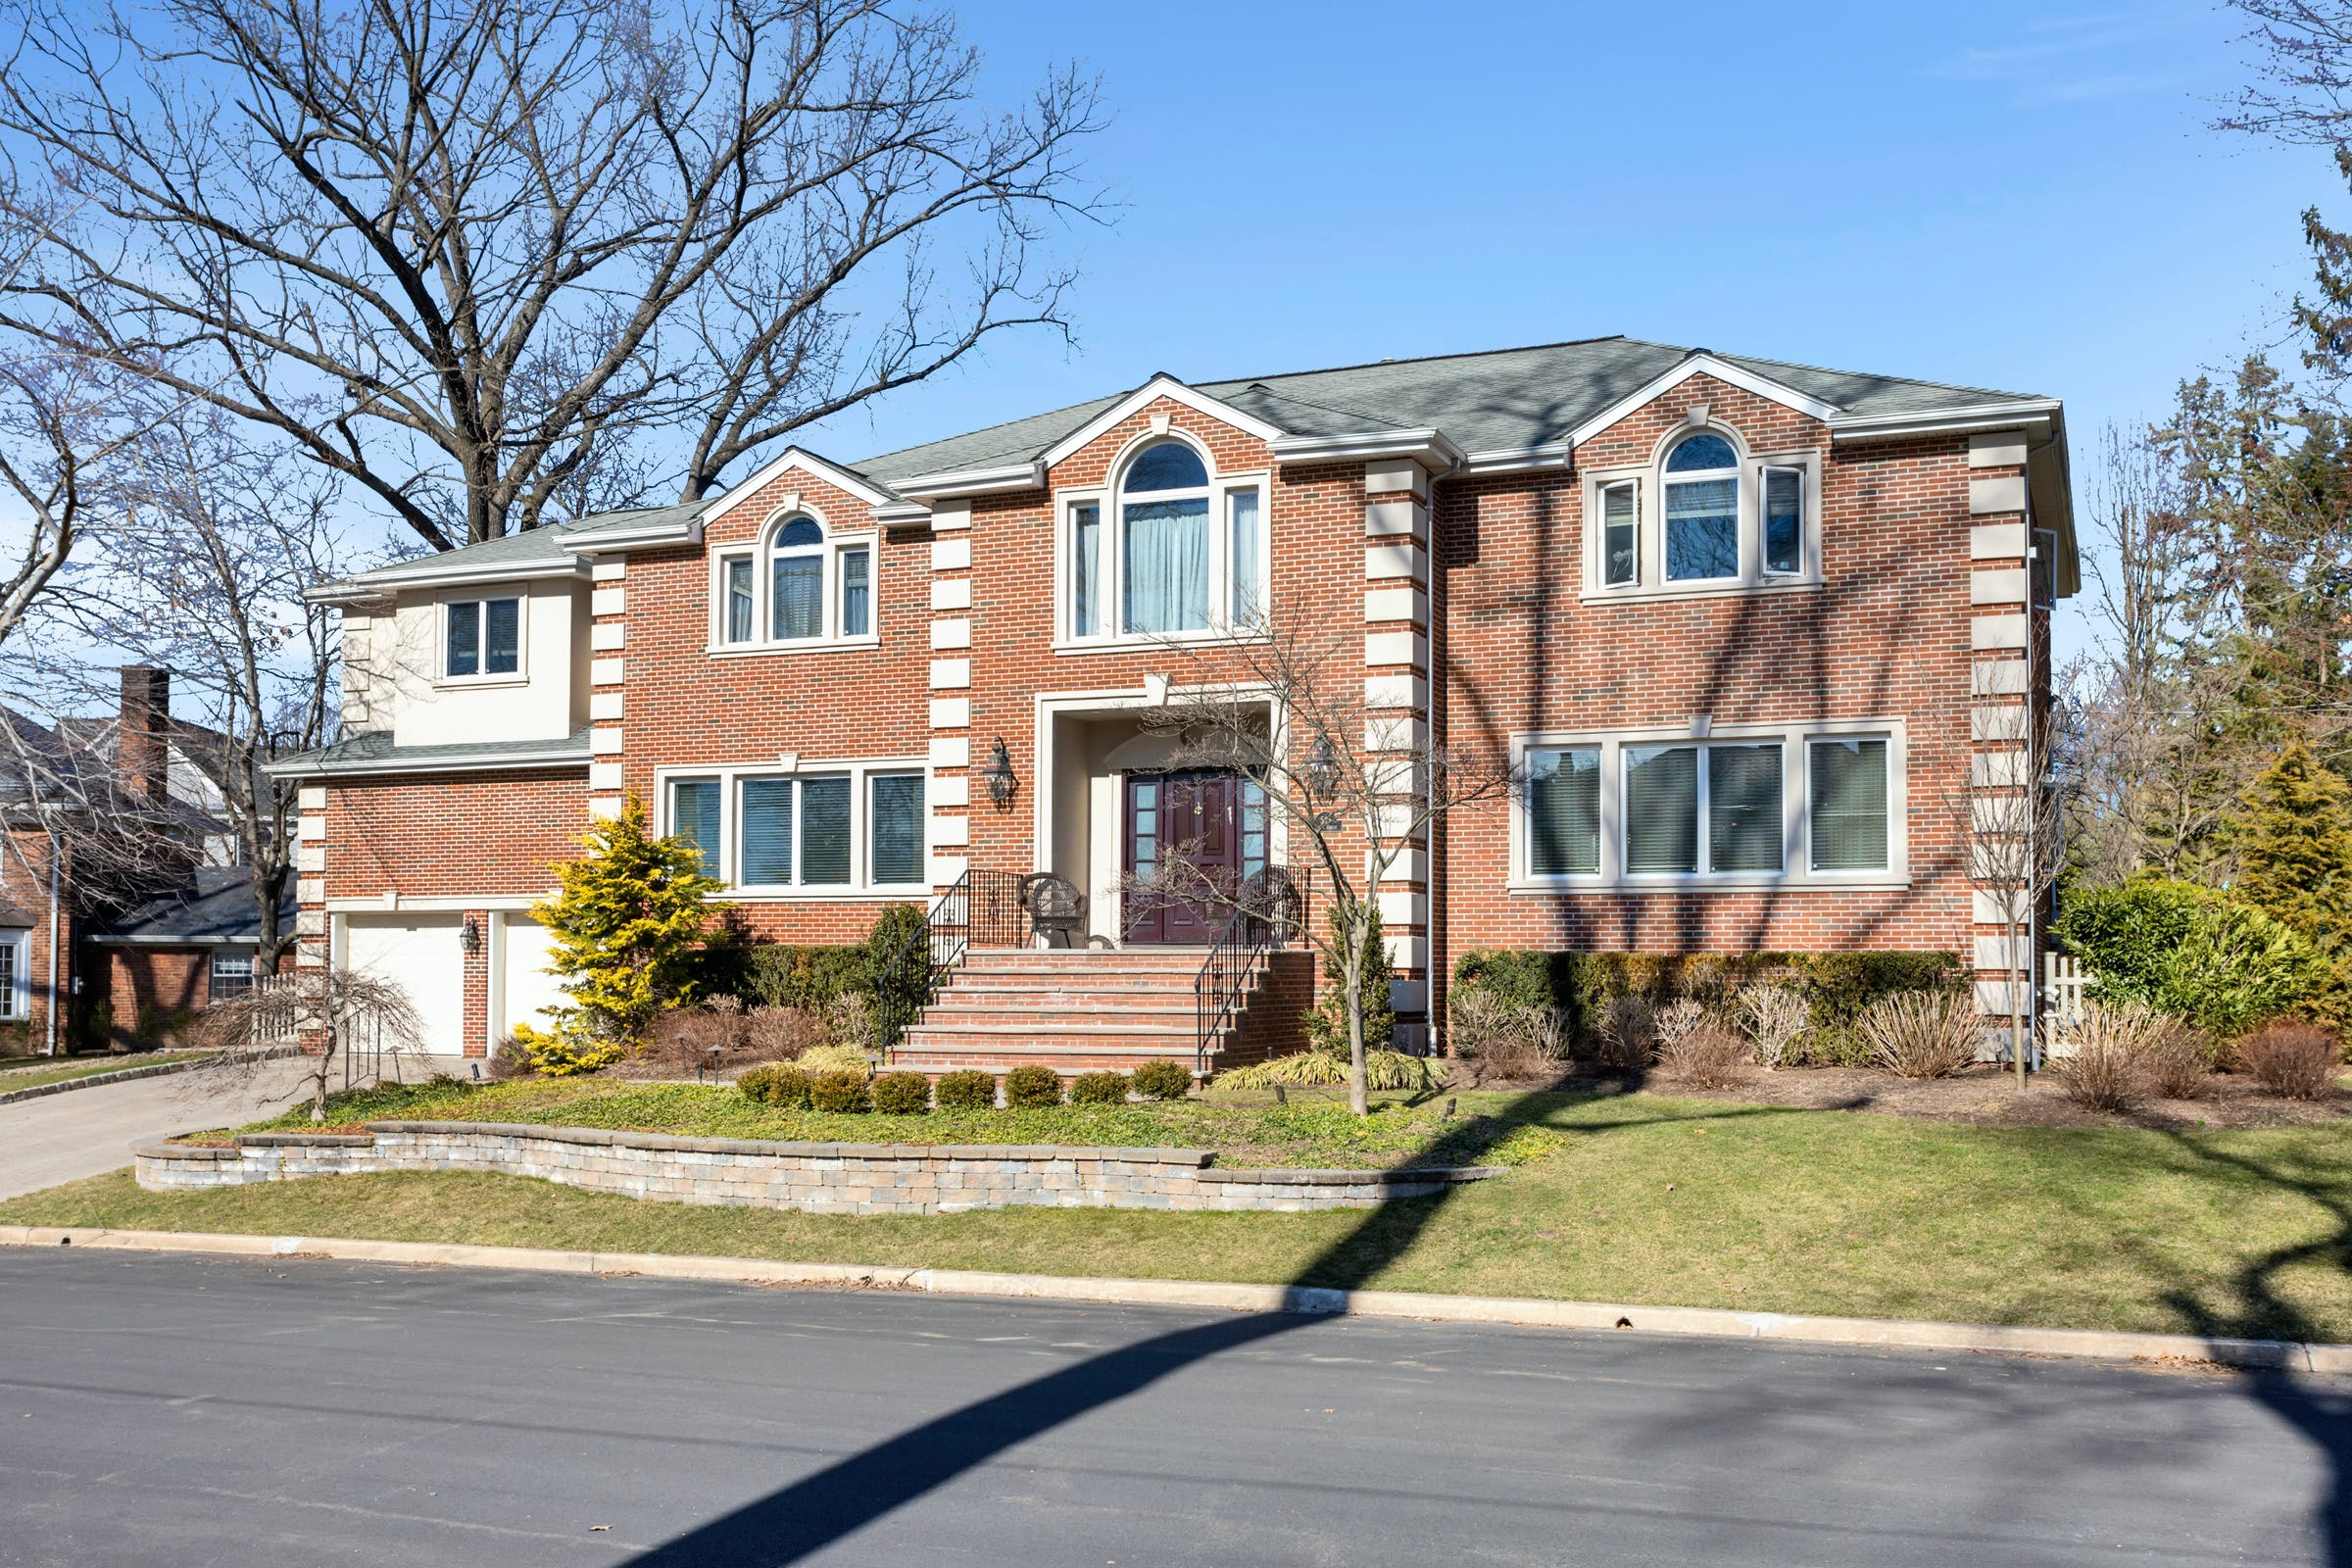 565 S Forest Drive – Teaneck